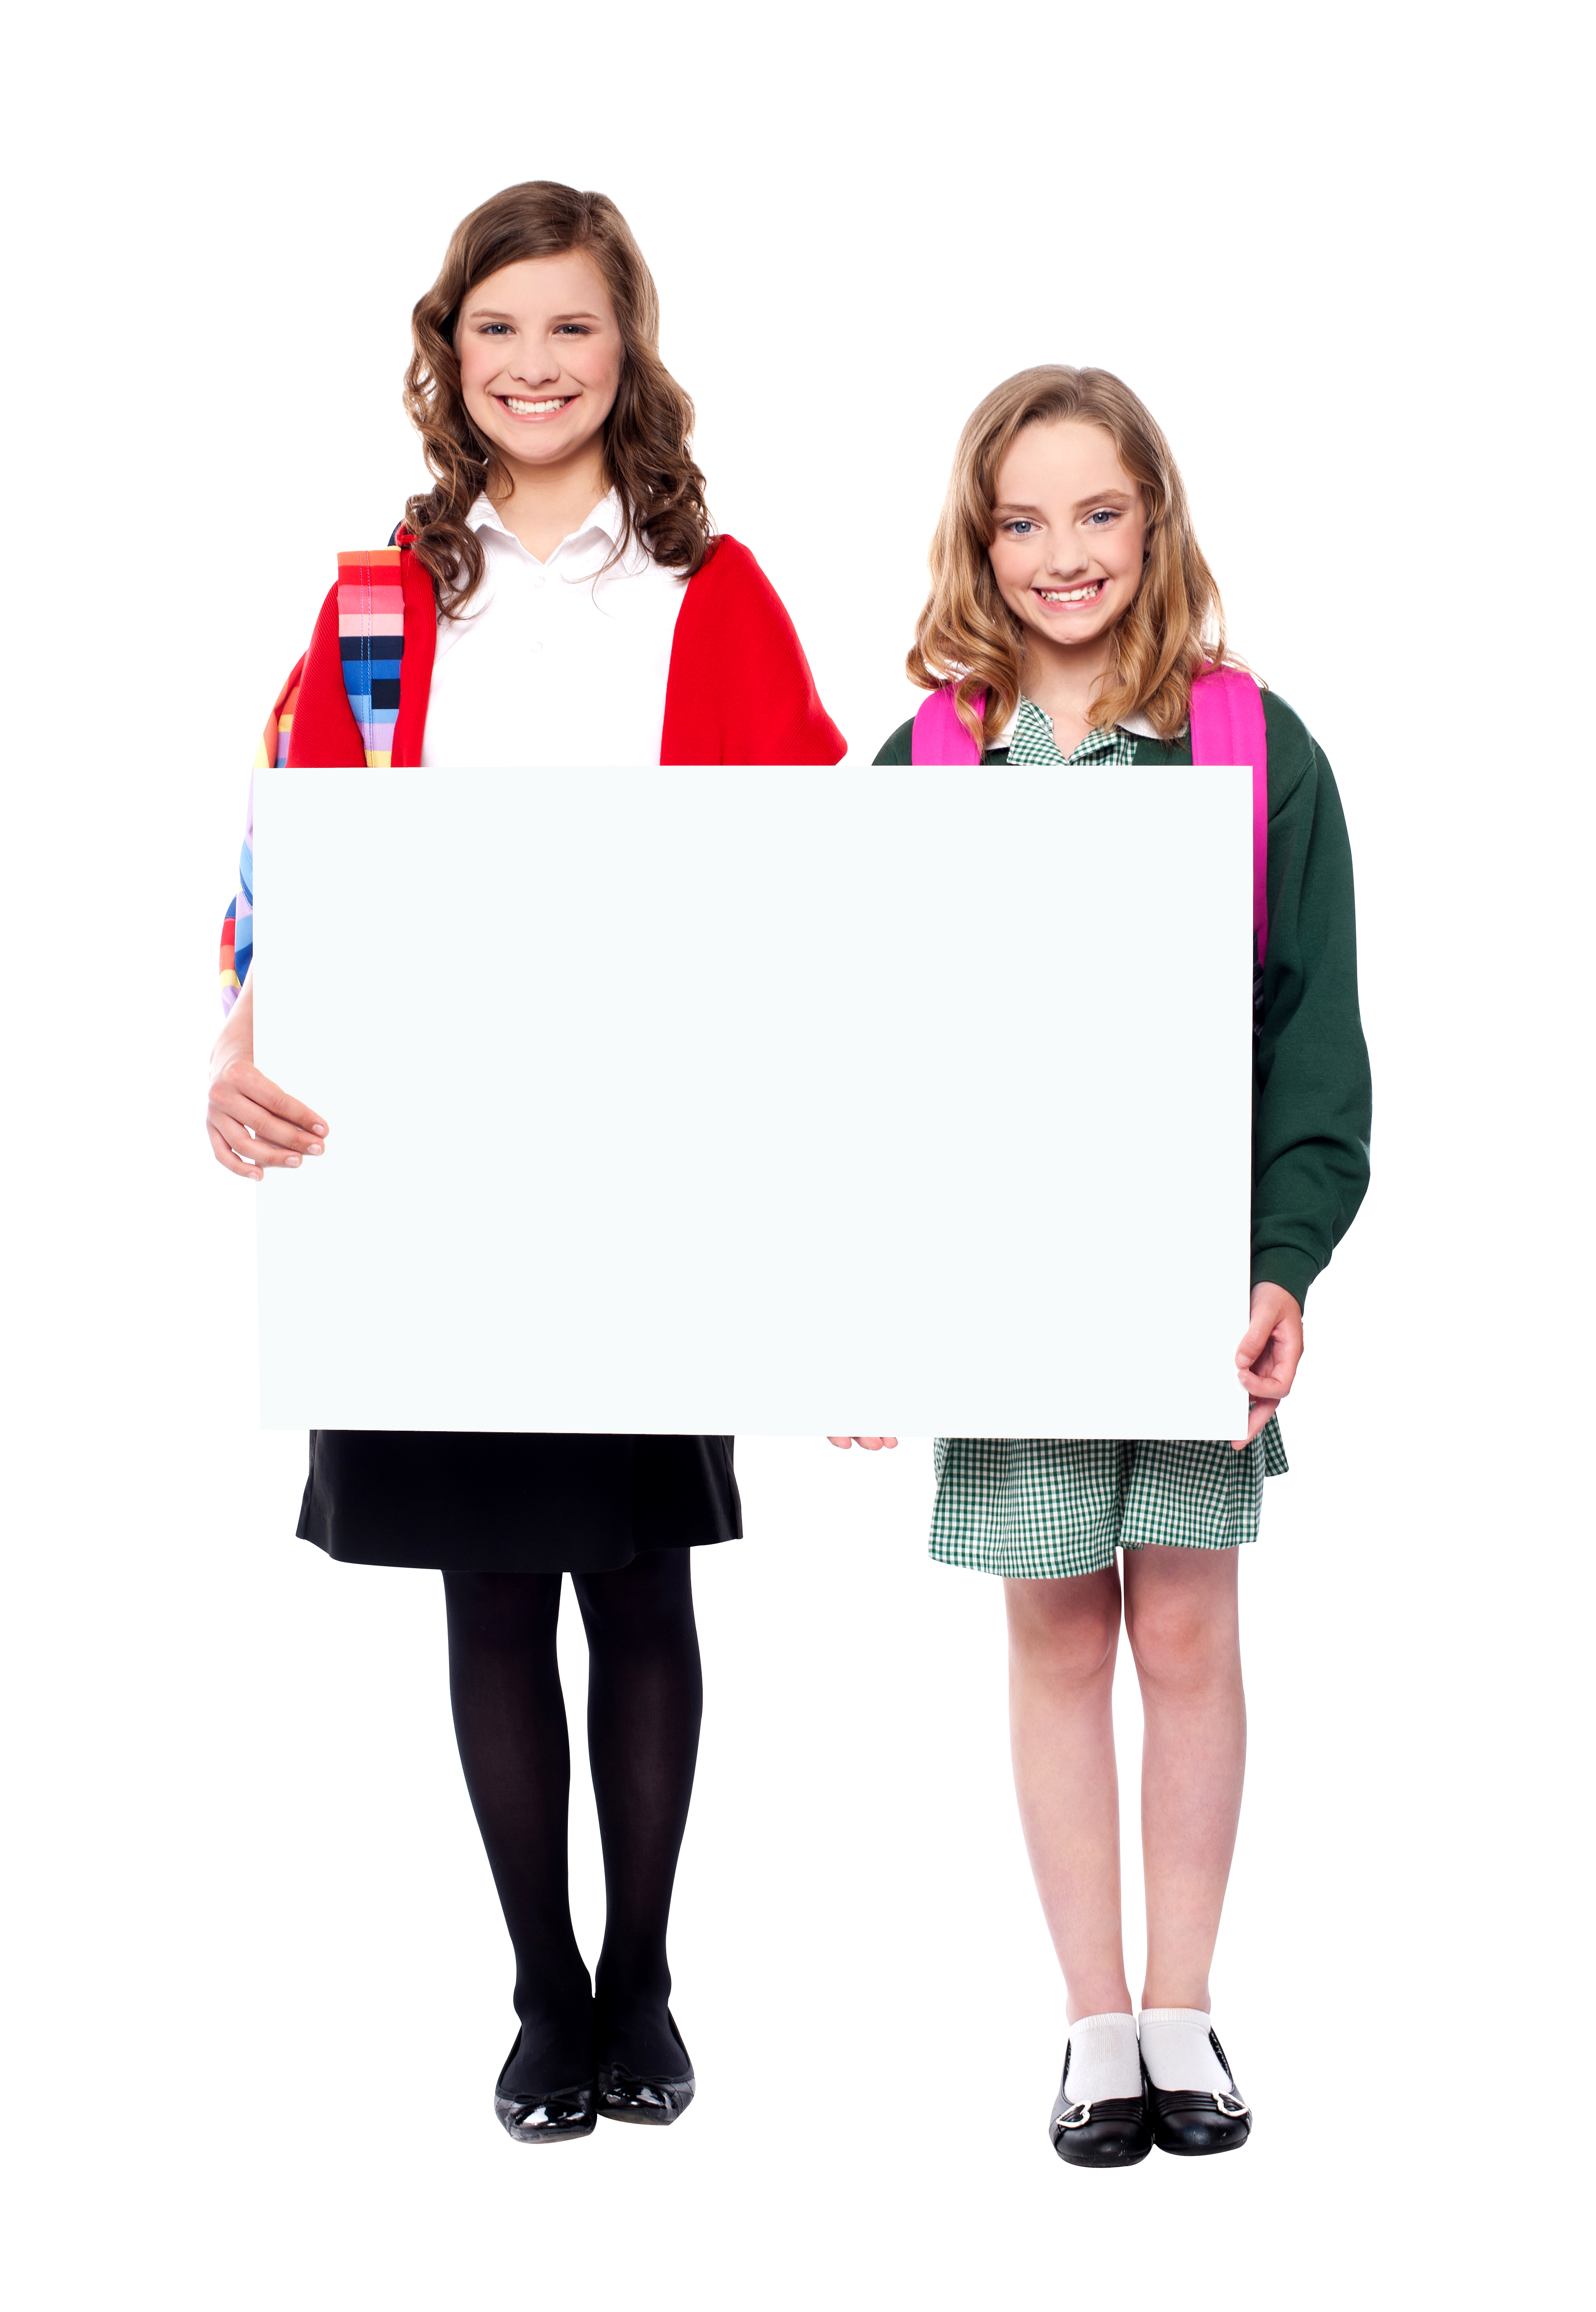 People Holding Banner Free Commercial Use PNG Image - Free PNG HD Images For Commercial Use